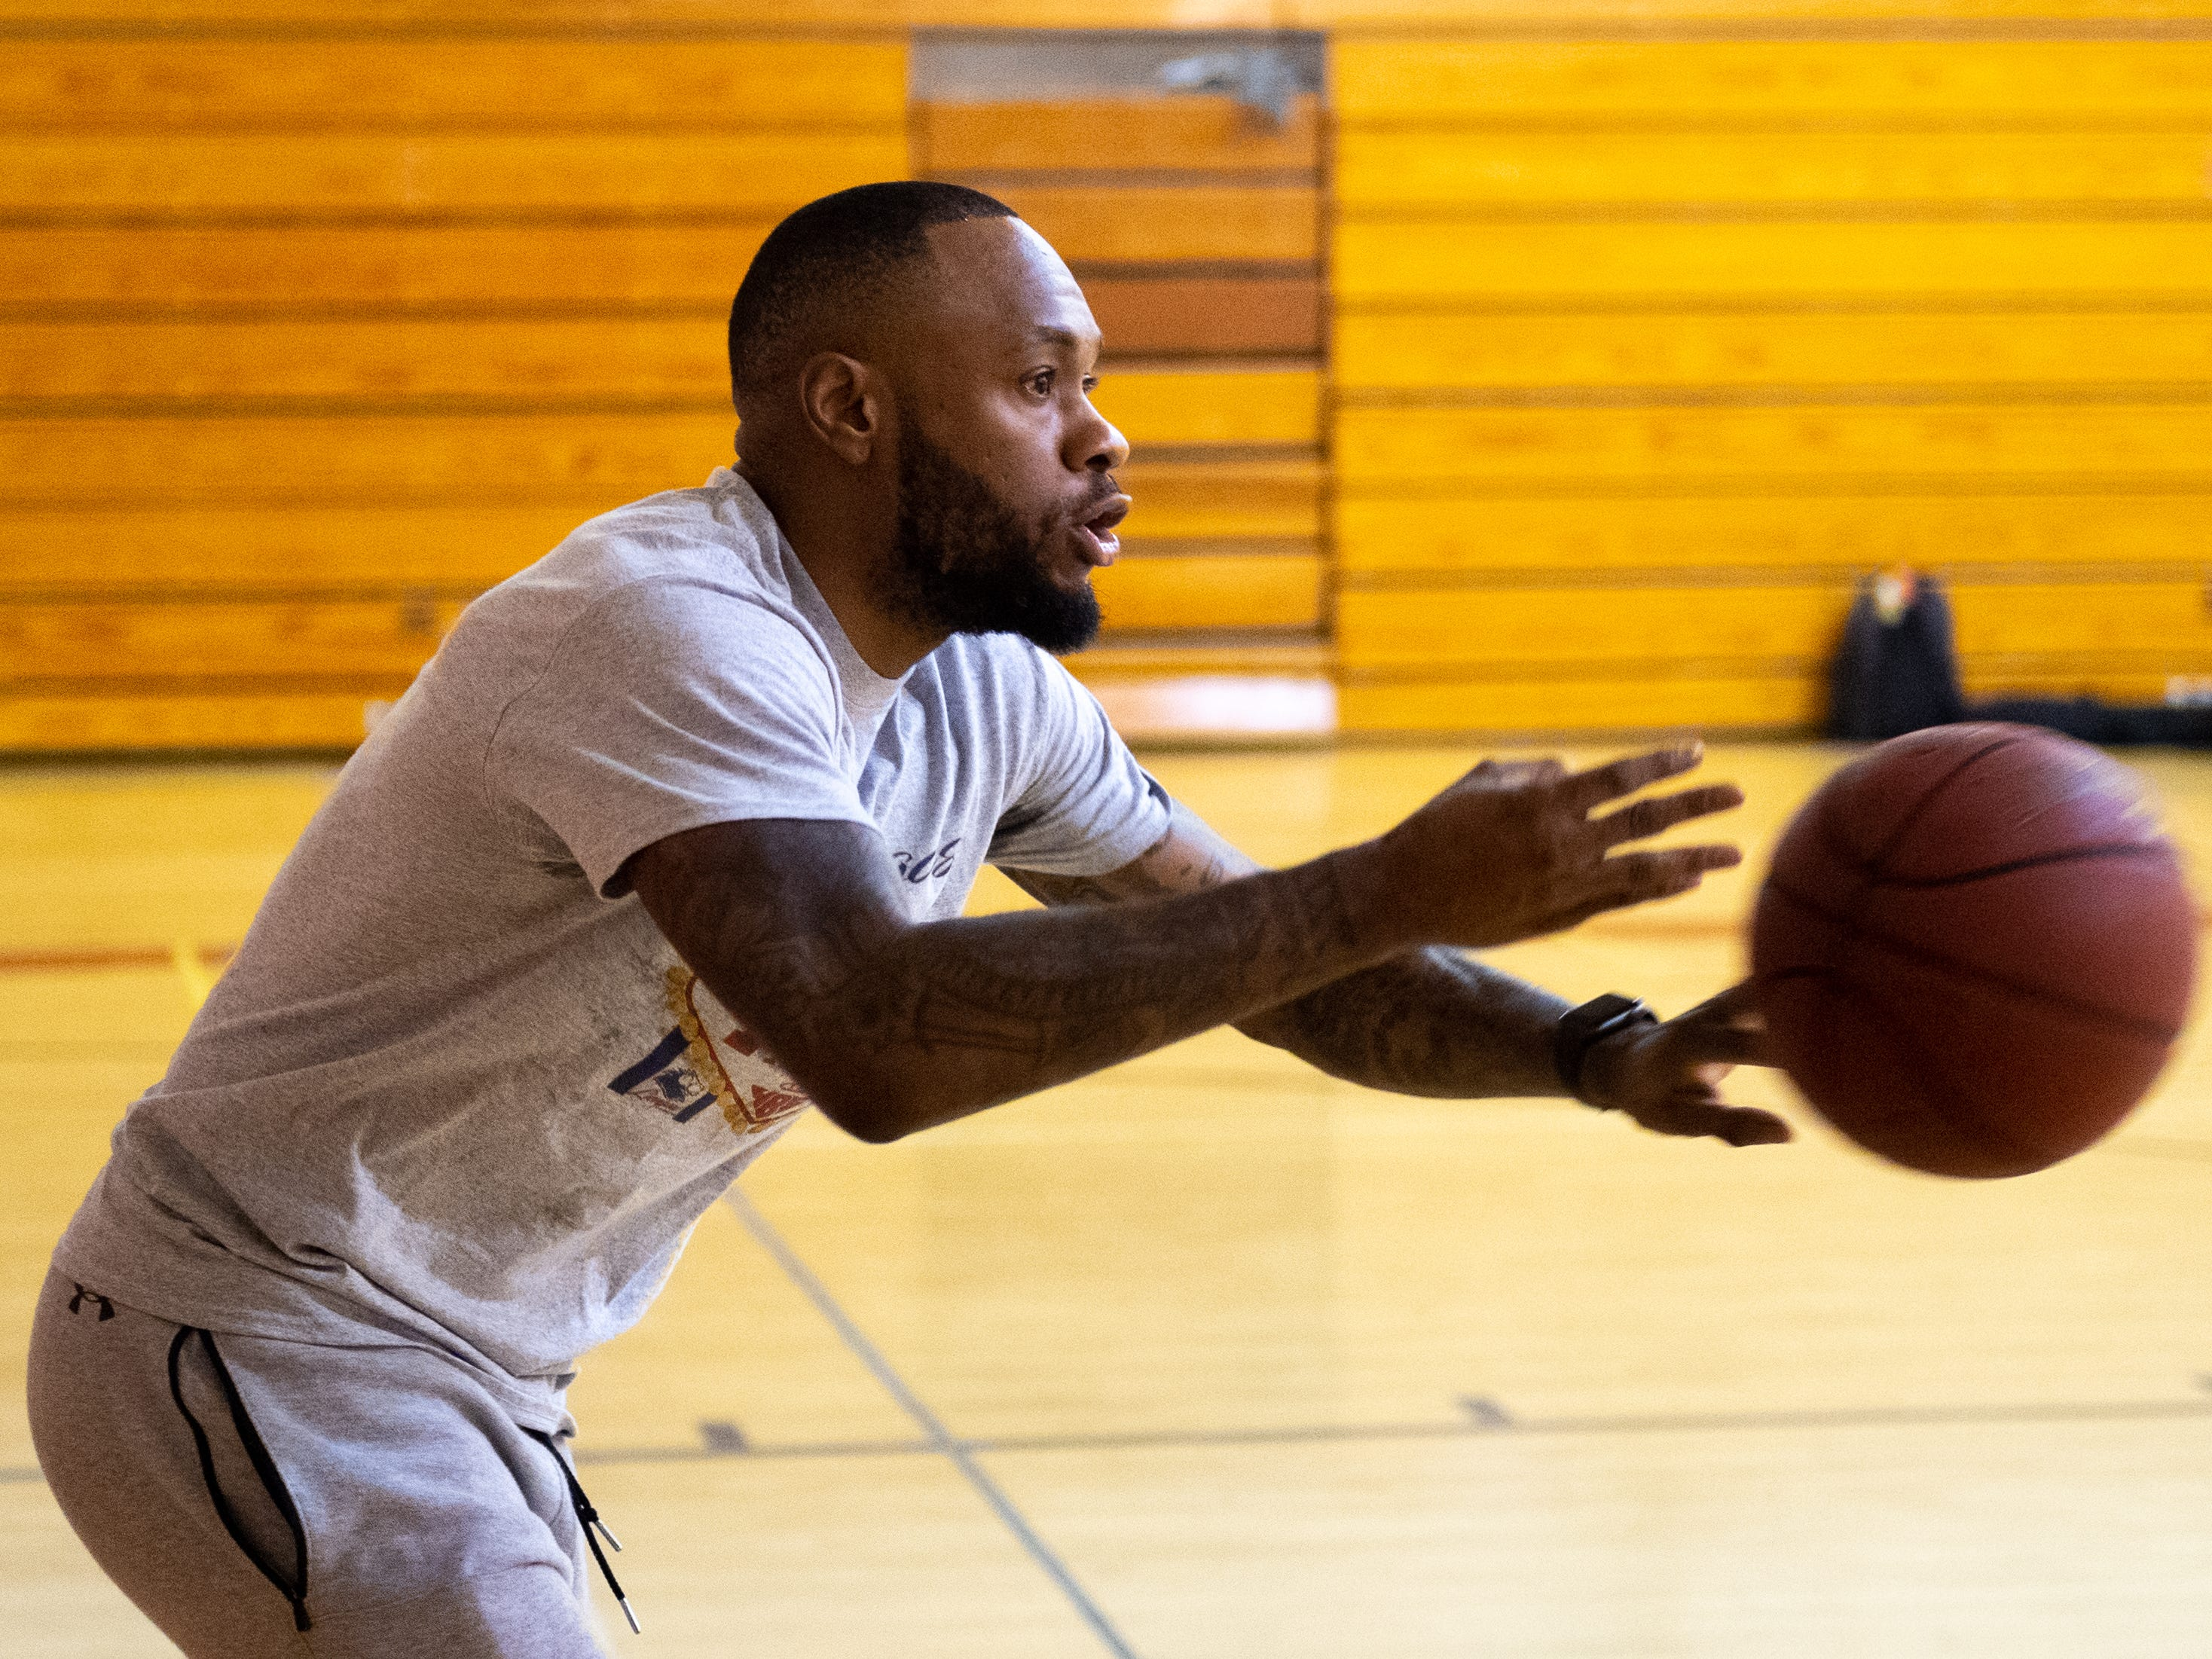 Mookie Dobbins didn't hesitate to point out small details that Jarace Walker was forgetting during the workout at Susquehannock High School, December 27, 2018.